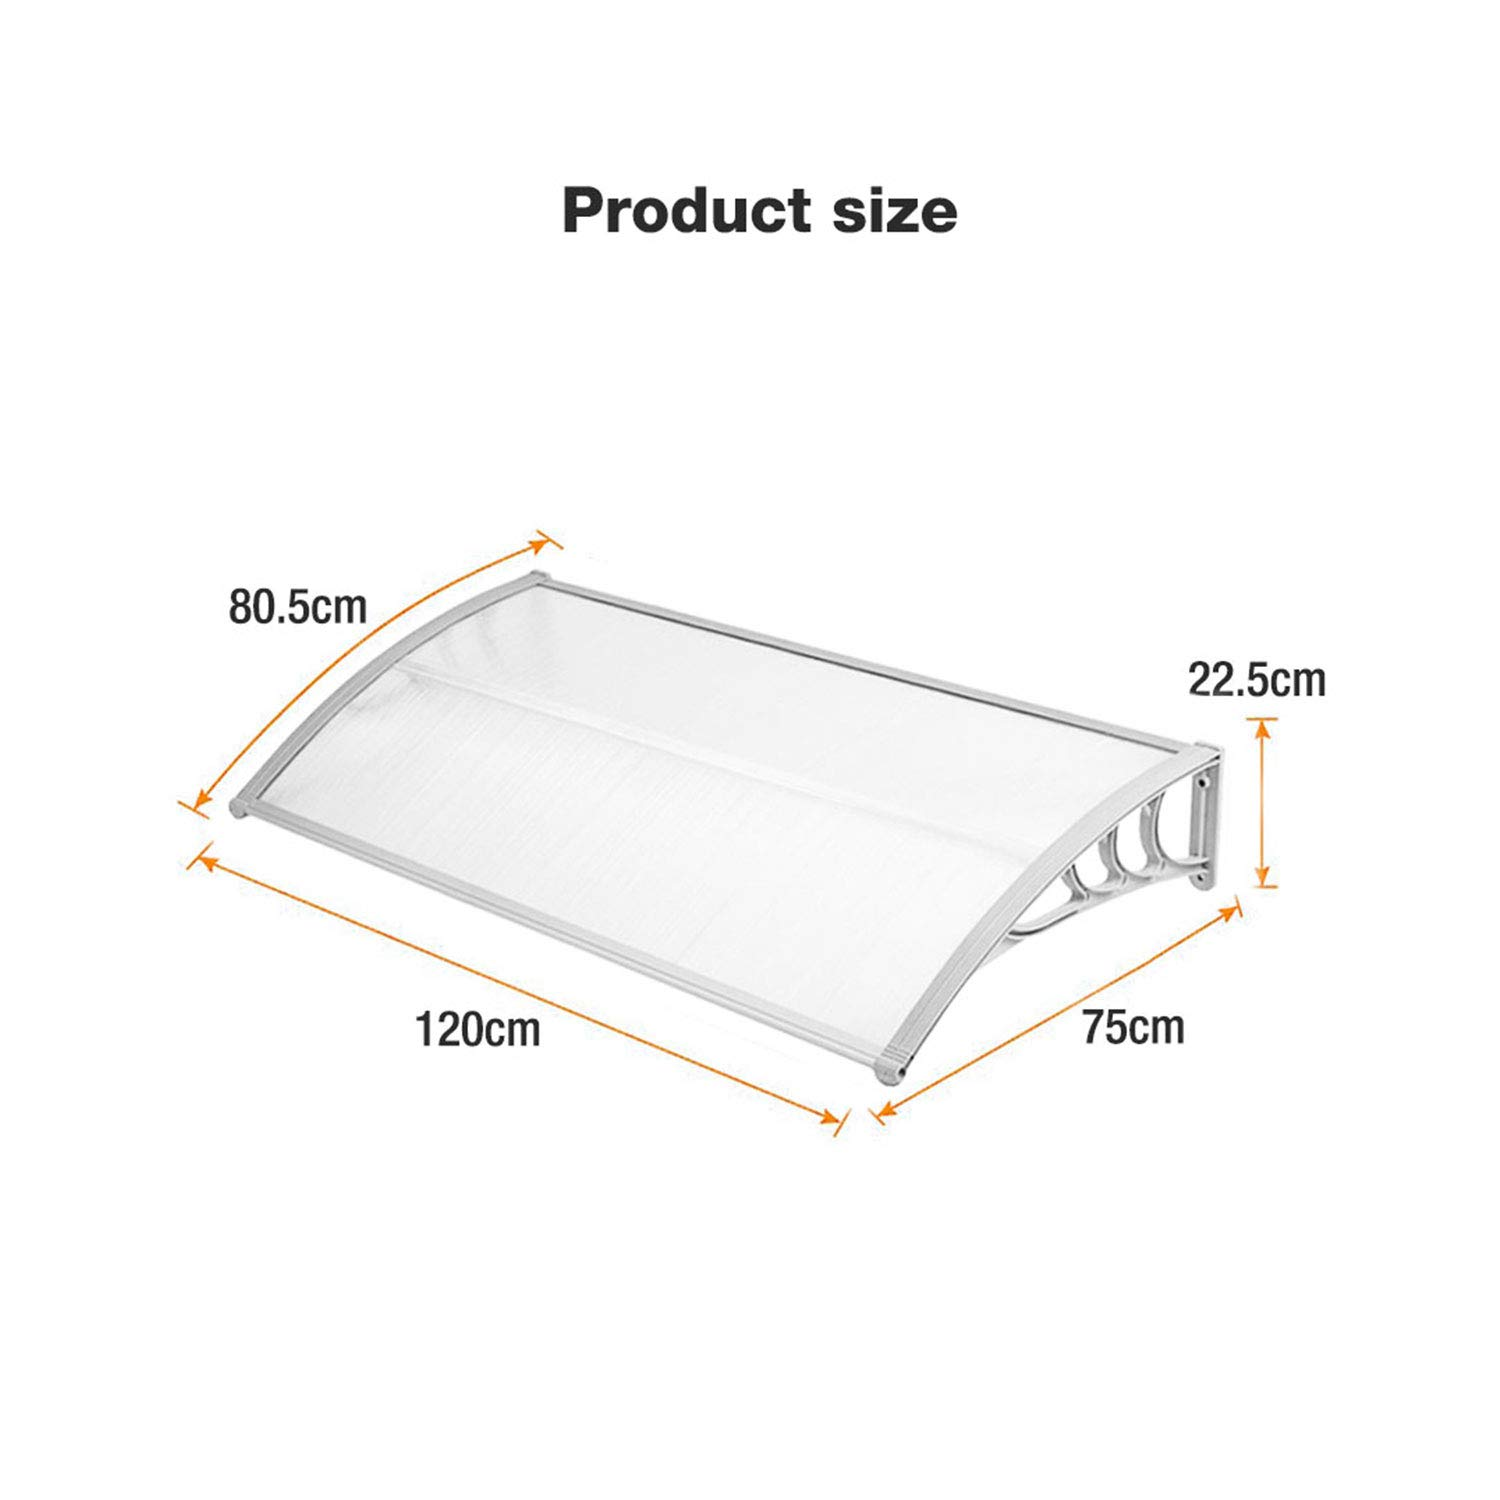 Door Canopy Awning Window Rain Shelter Cover for Front Door Porch Black 278x 90cm 109.4 x 35.4 inches